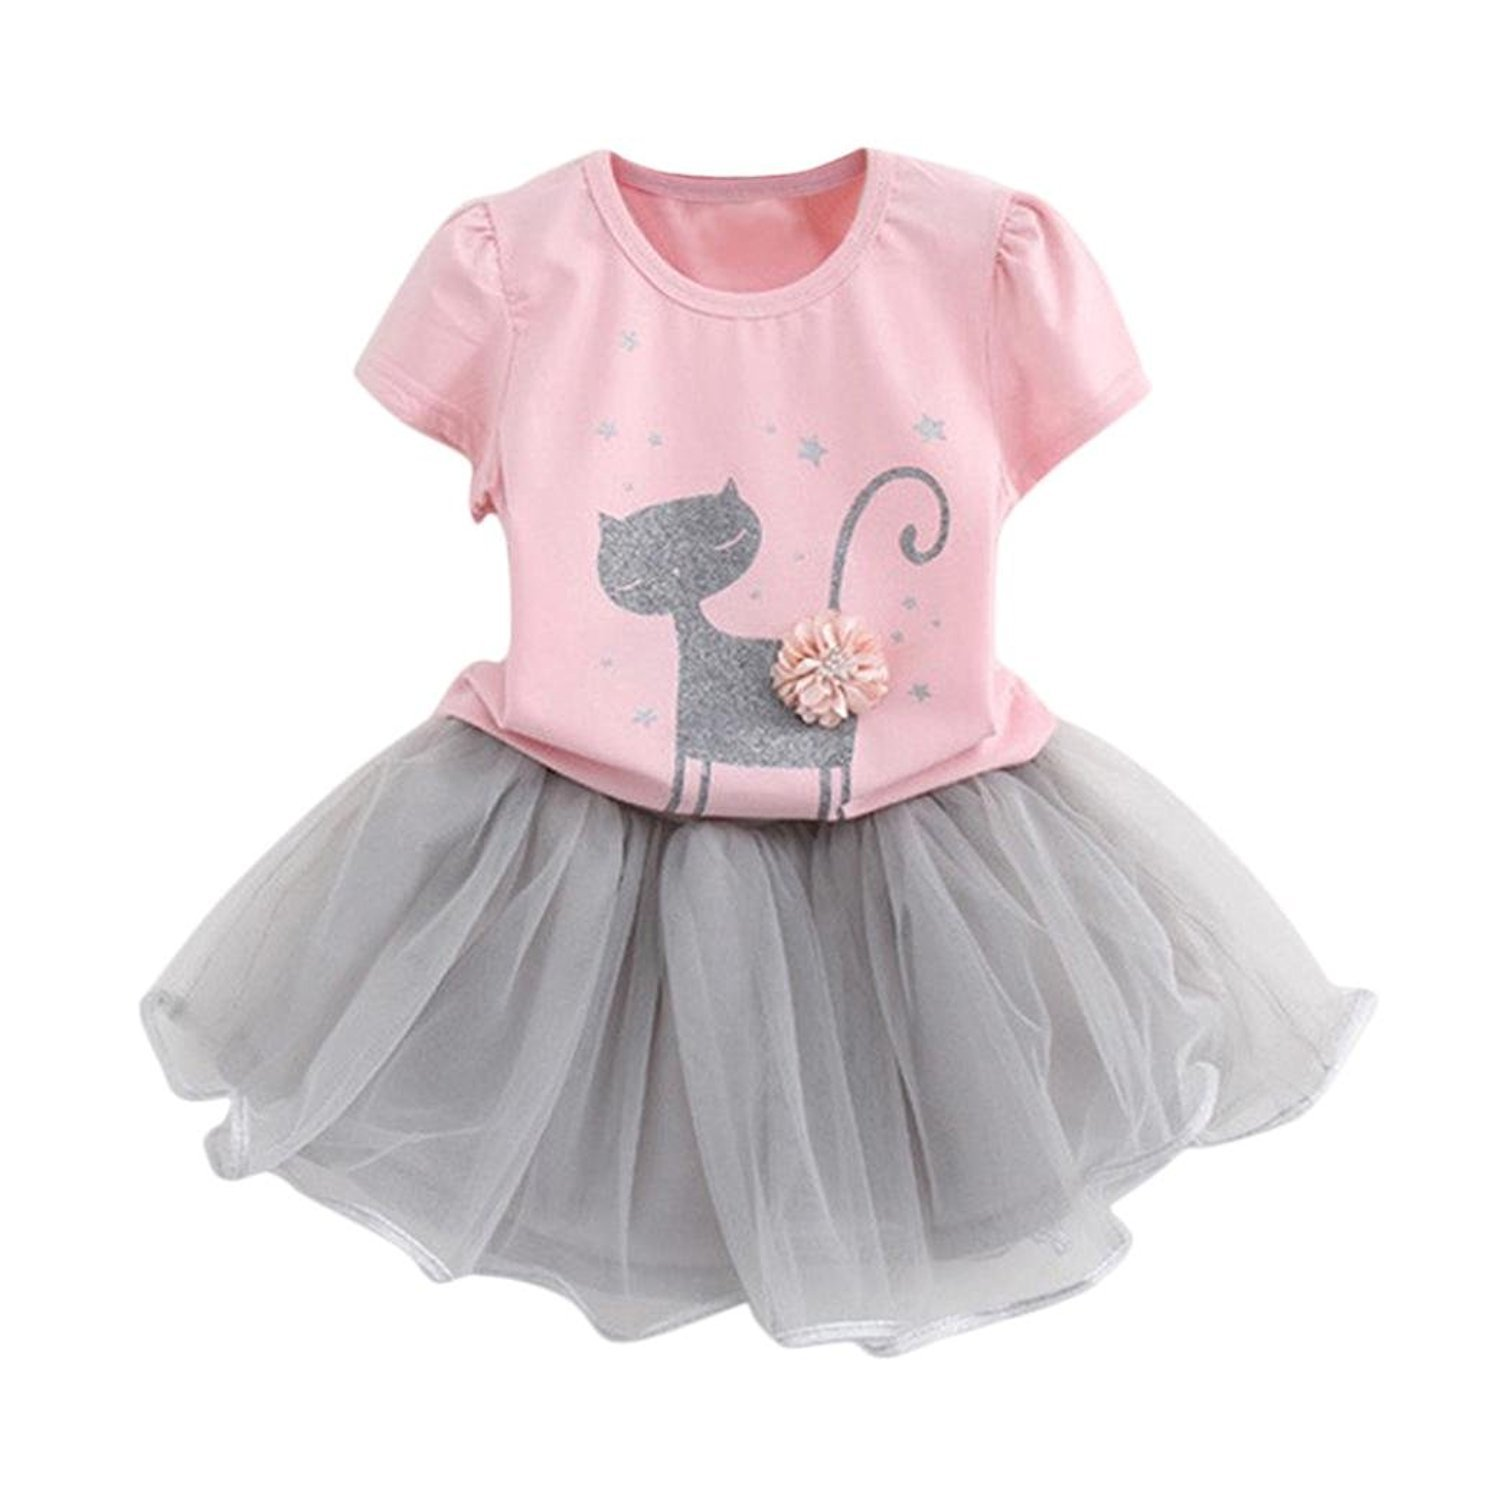 Kids Girl Toddler Baby Girl Summer Casual Short Sleeve Cute Cat & Floral Tutu Dress Clothes (Pink, 3T/100)